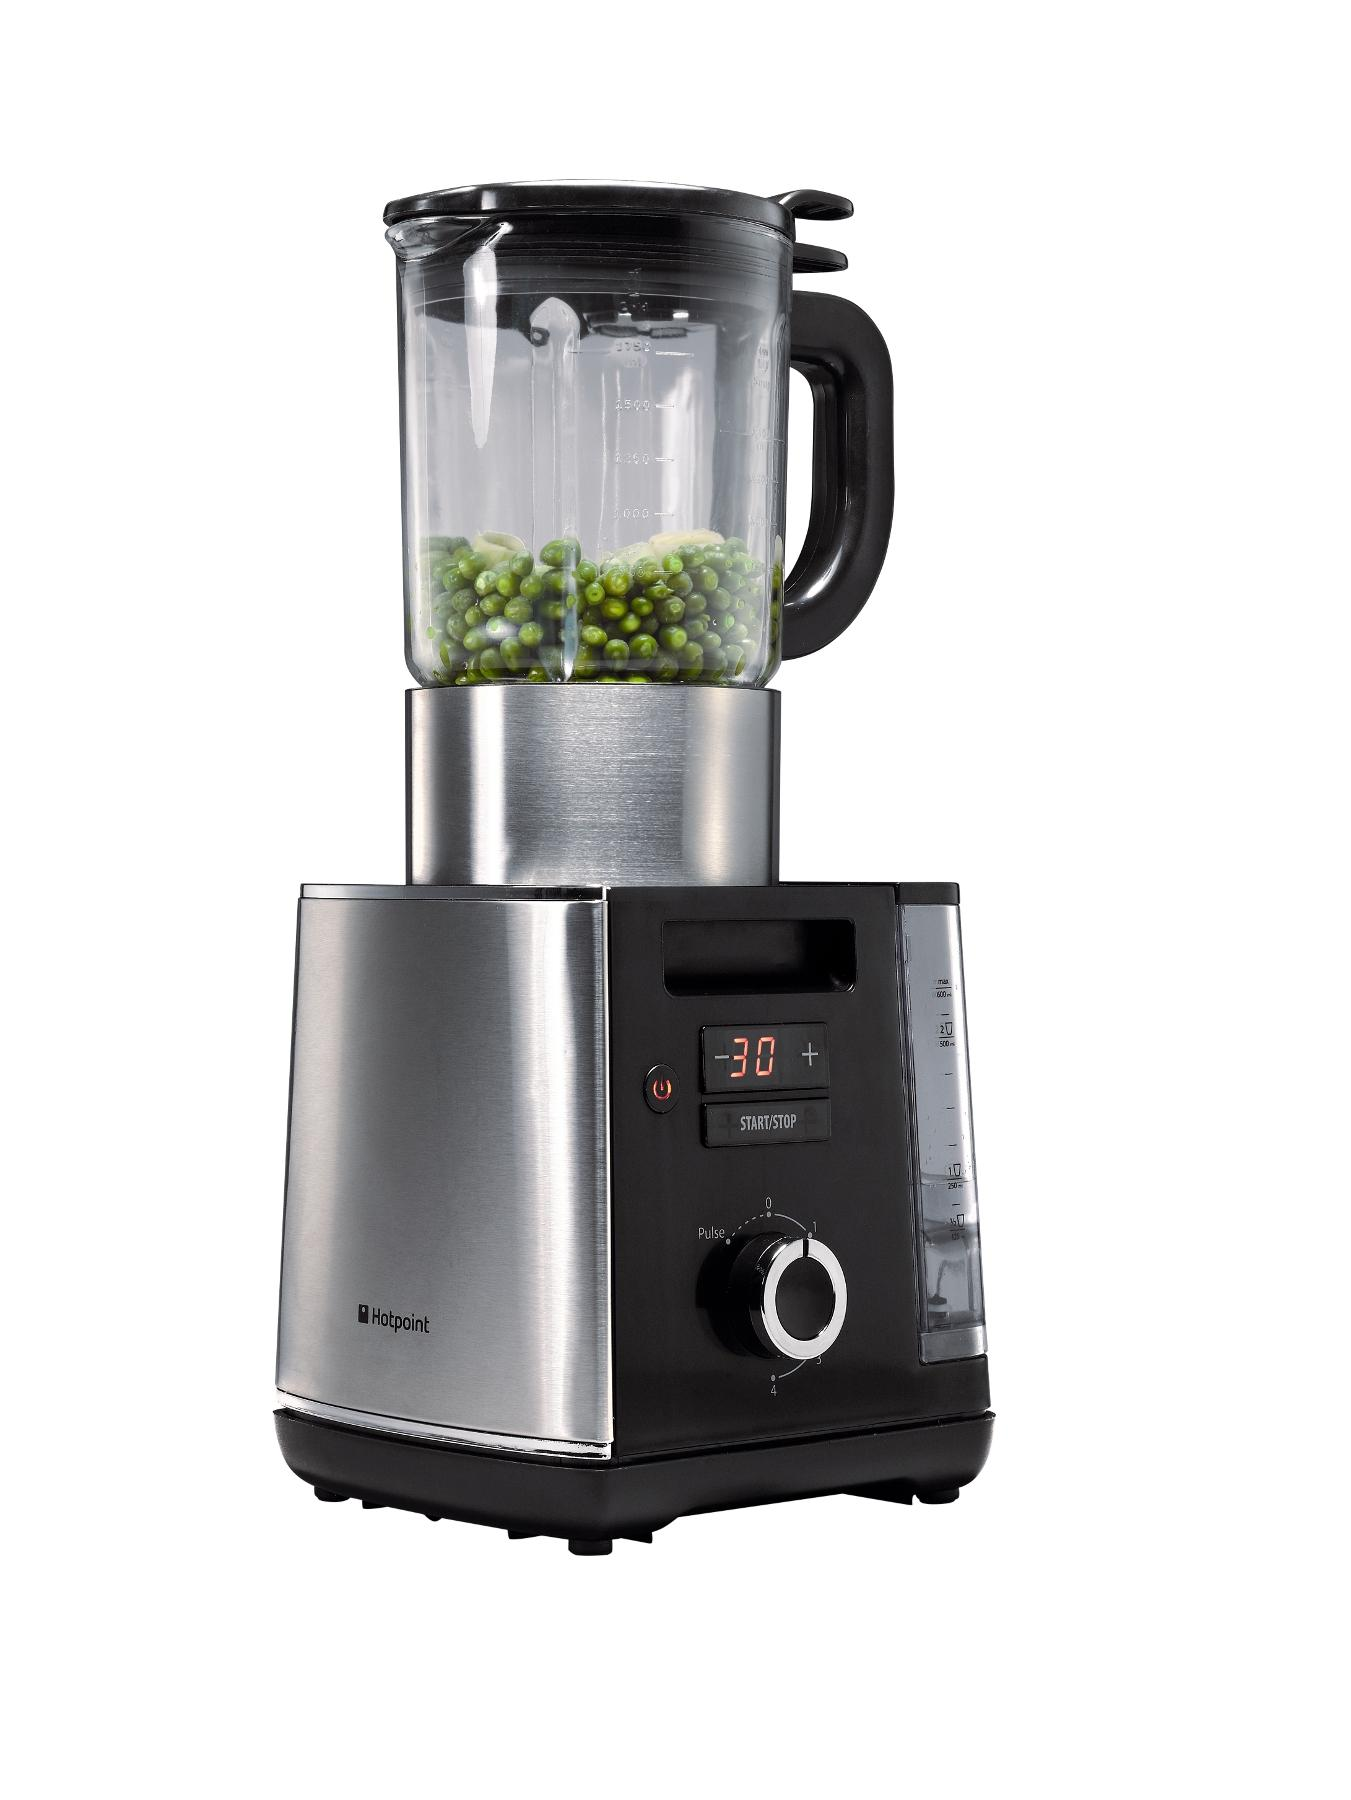 TB060CAX0UK 550-watt Steam Blender